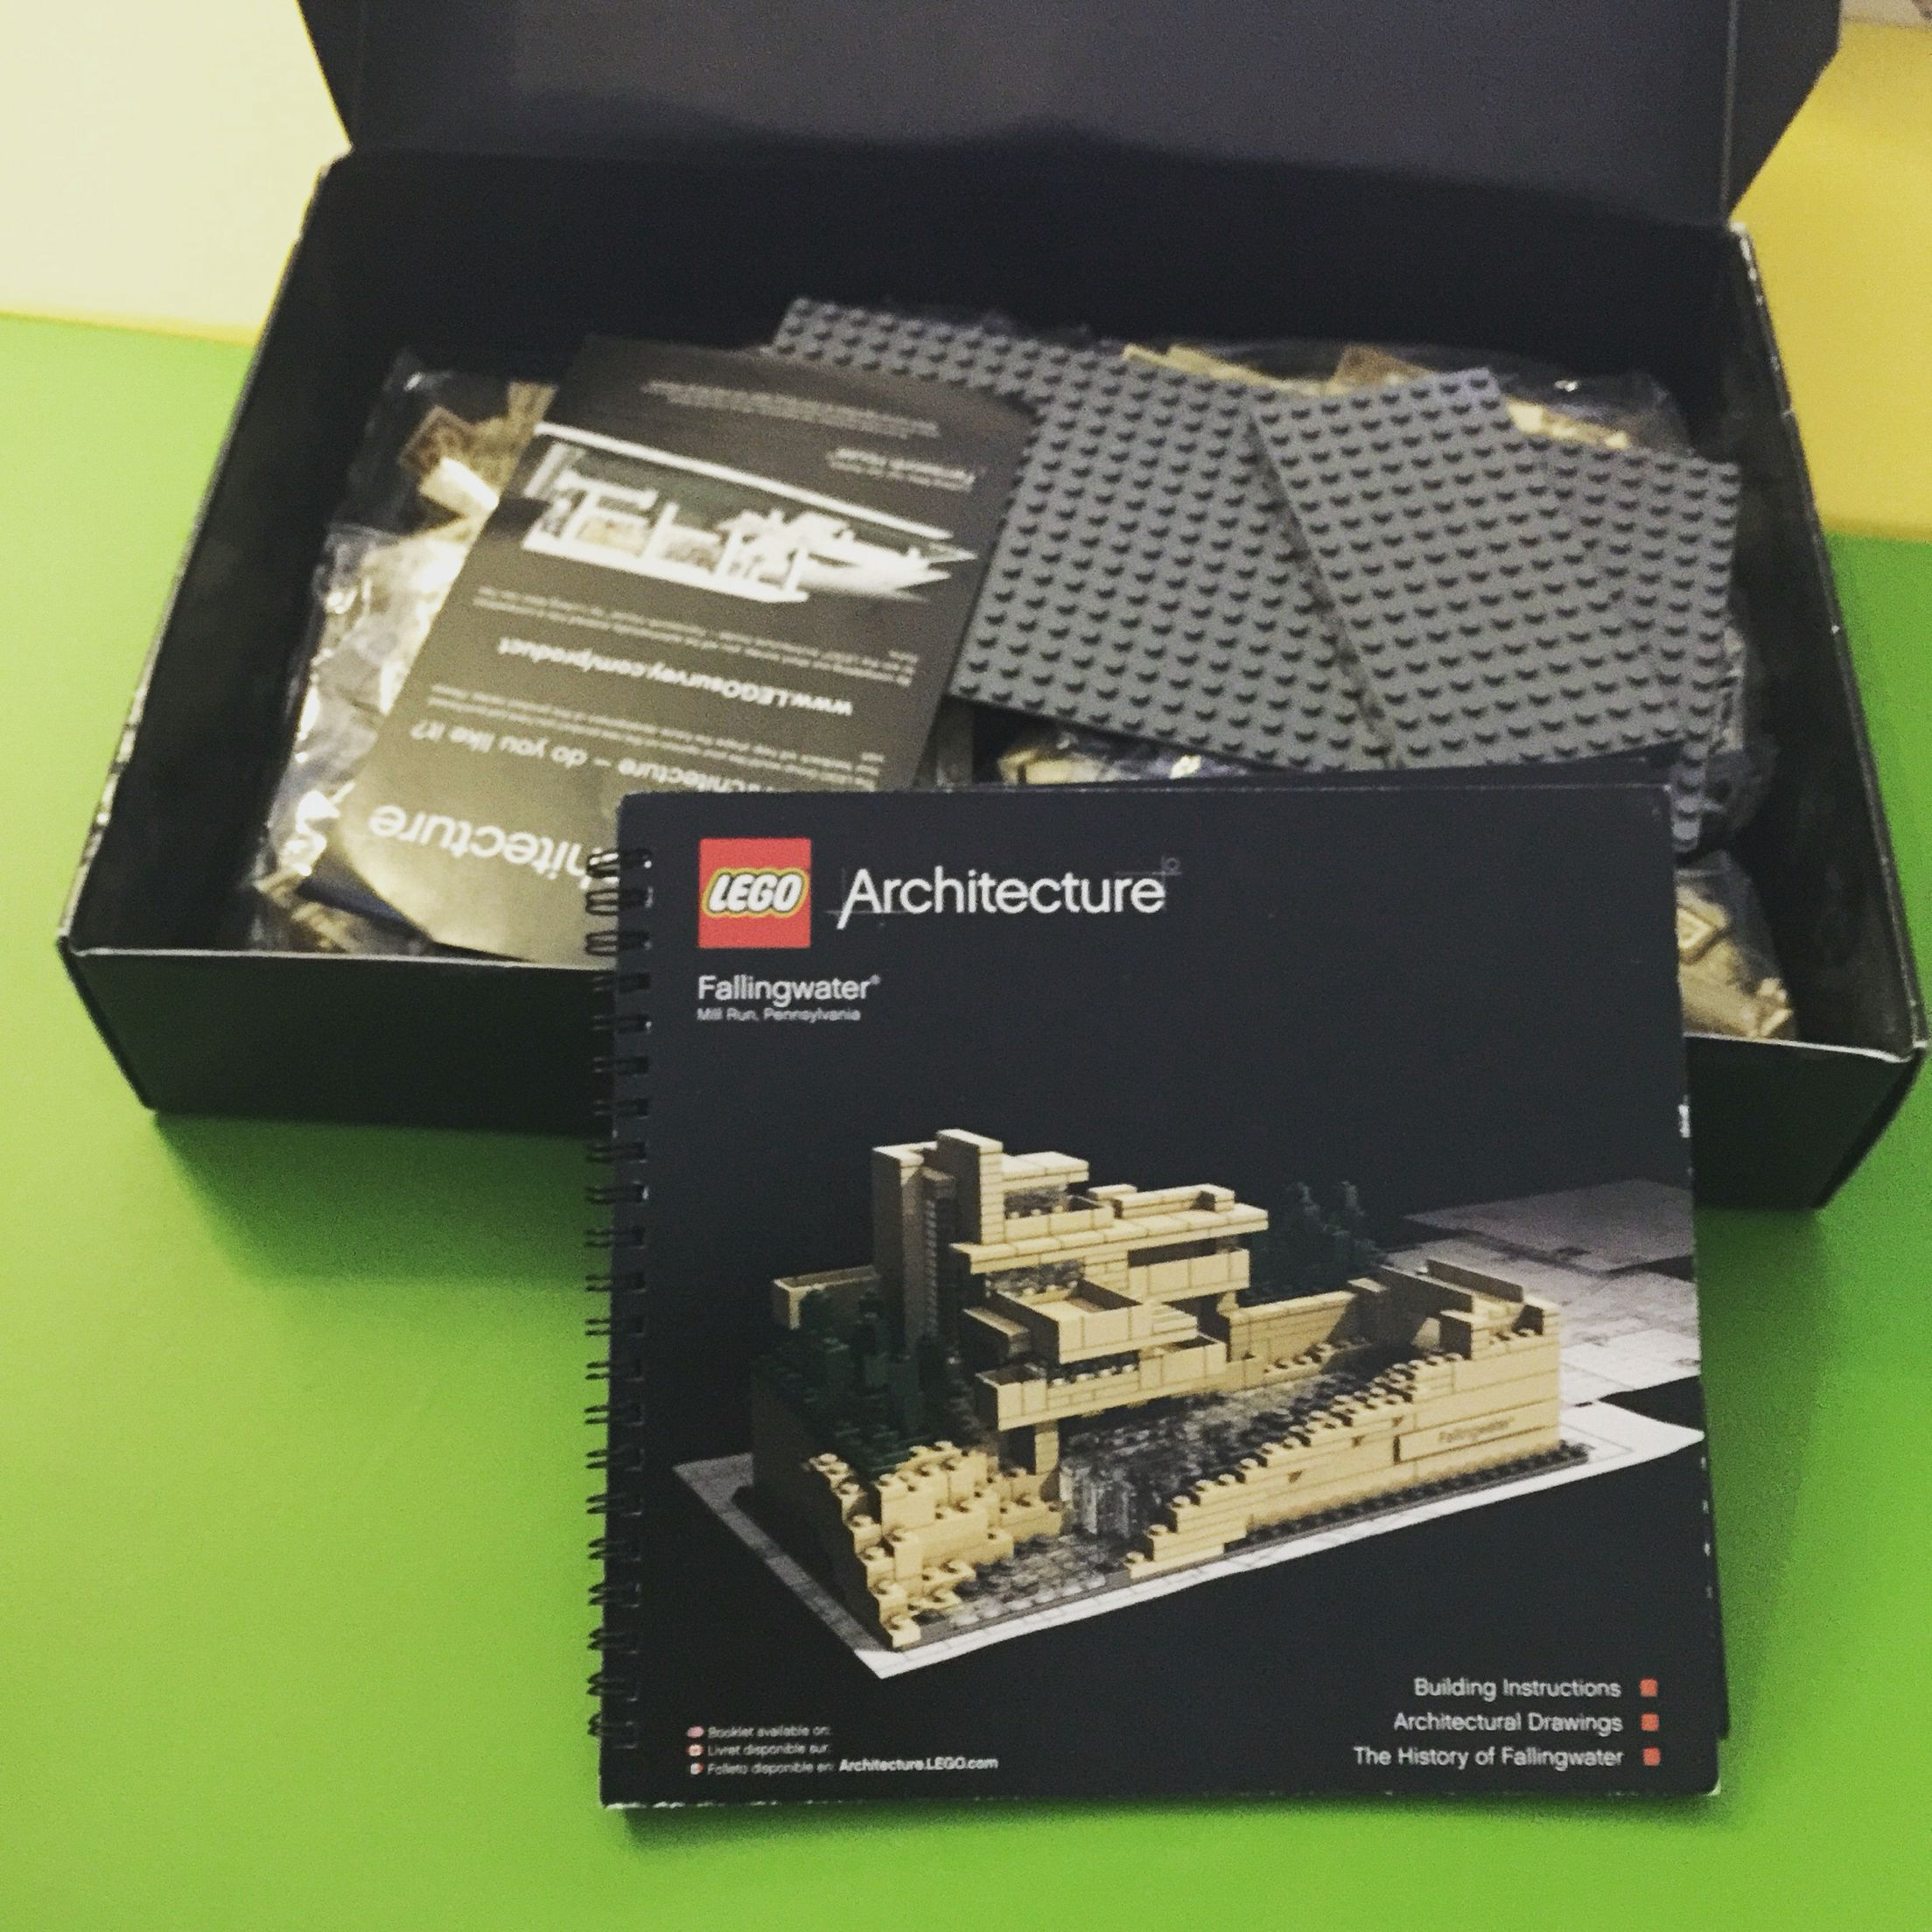 The Next Lego Architecture Project Frank Lloyd Wrights